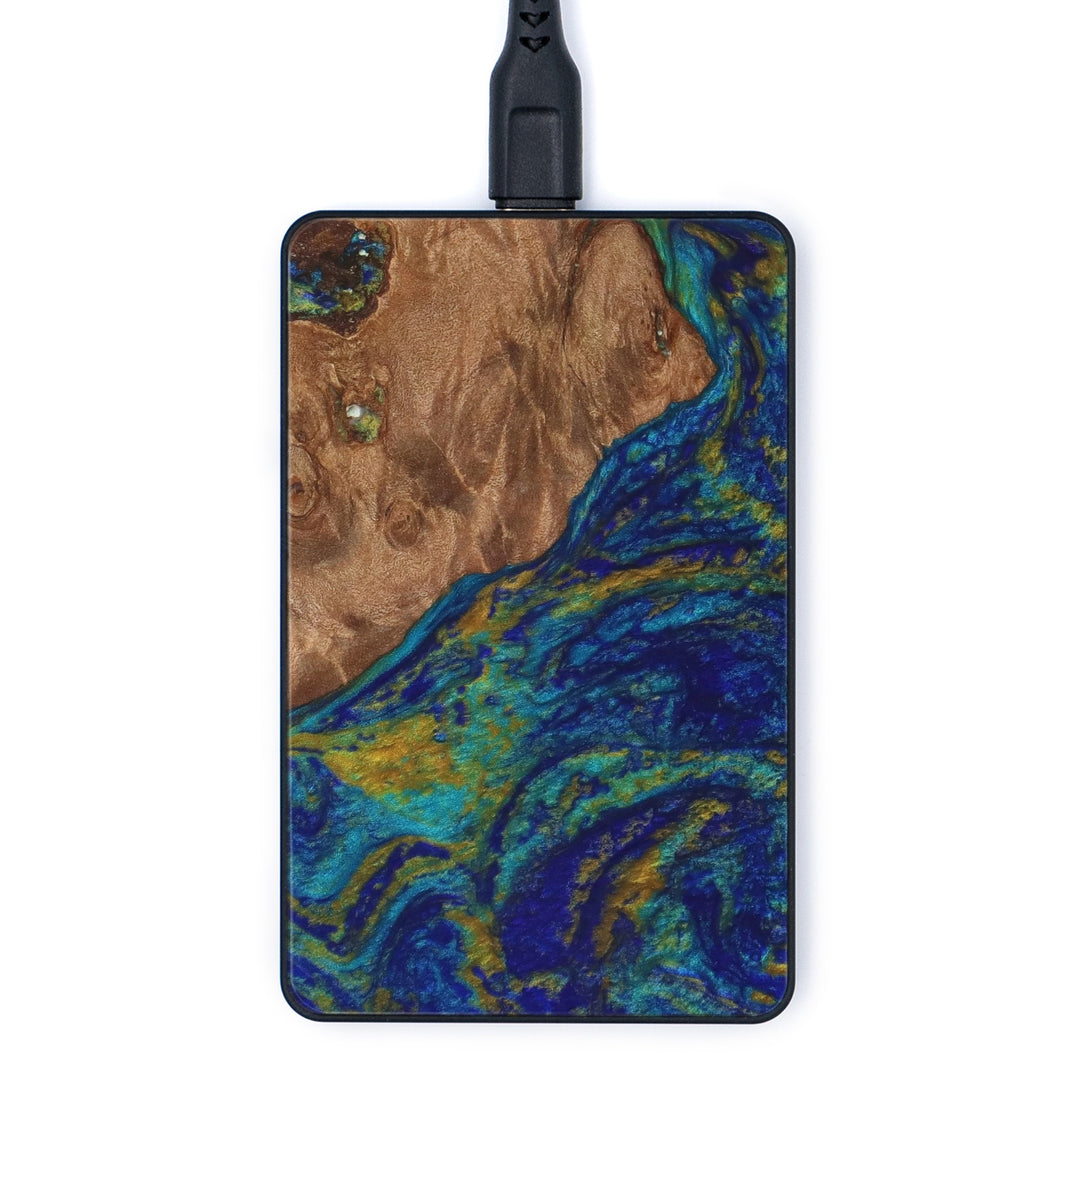 Thin Wireless Charger - Blaine (Teal & Gold, 335135)